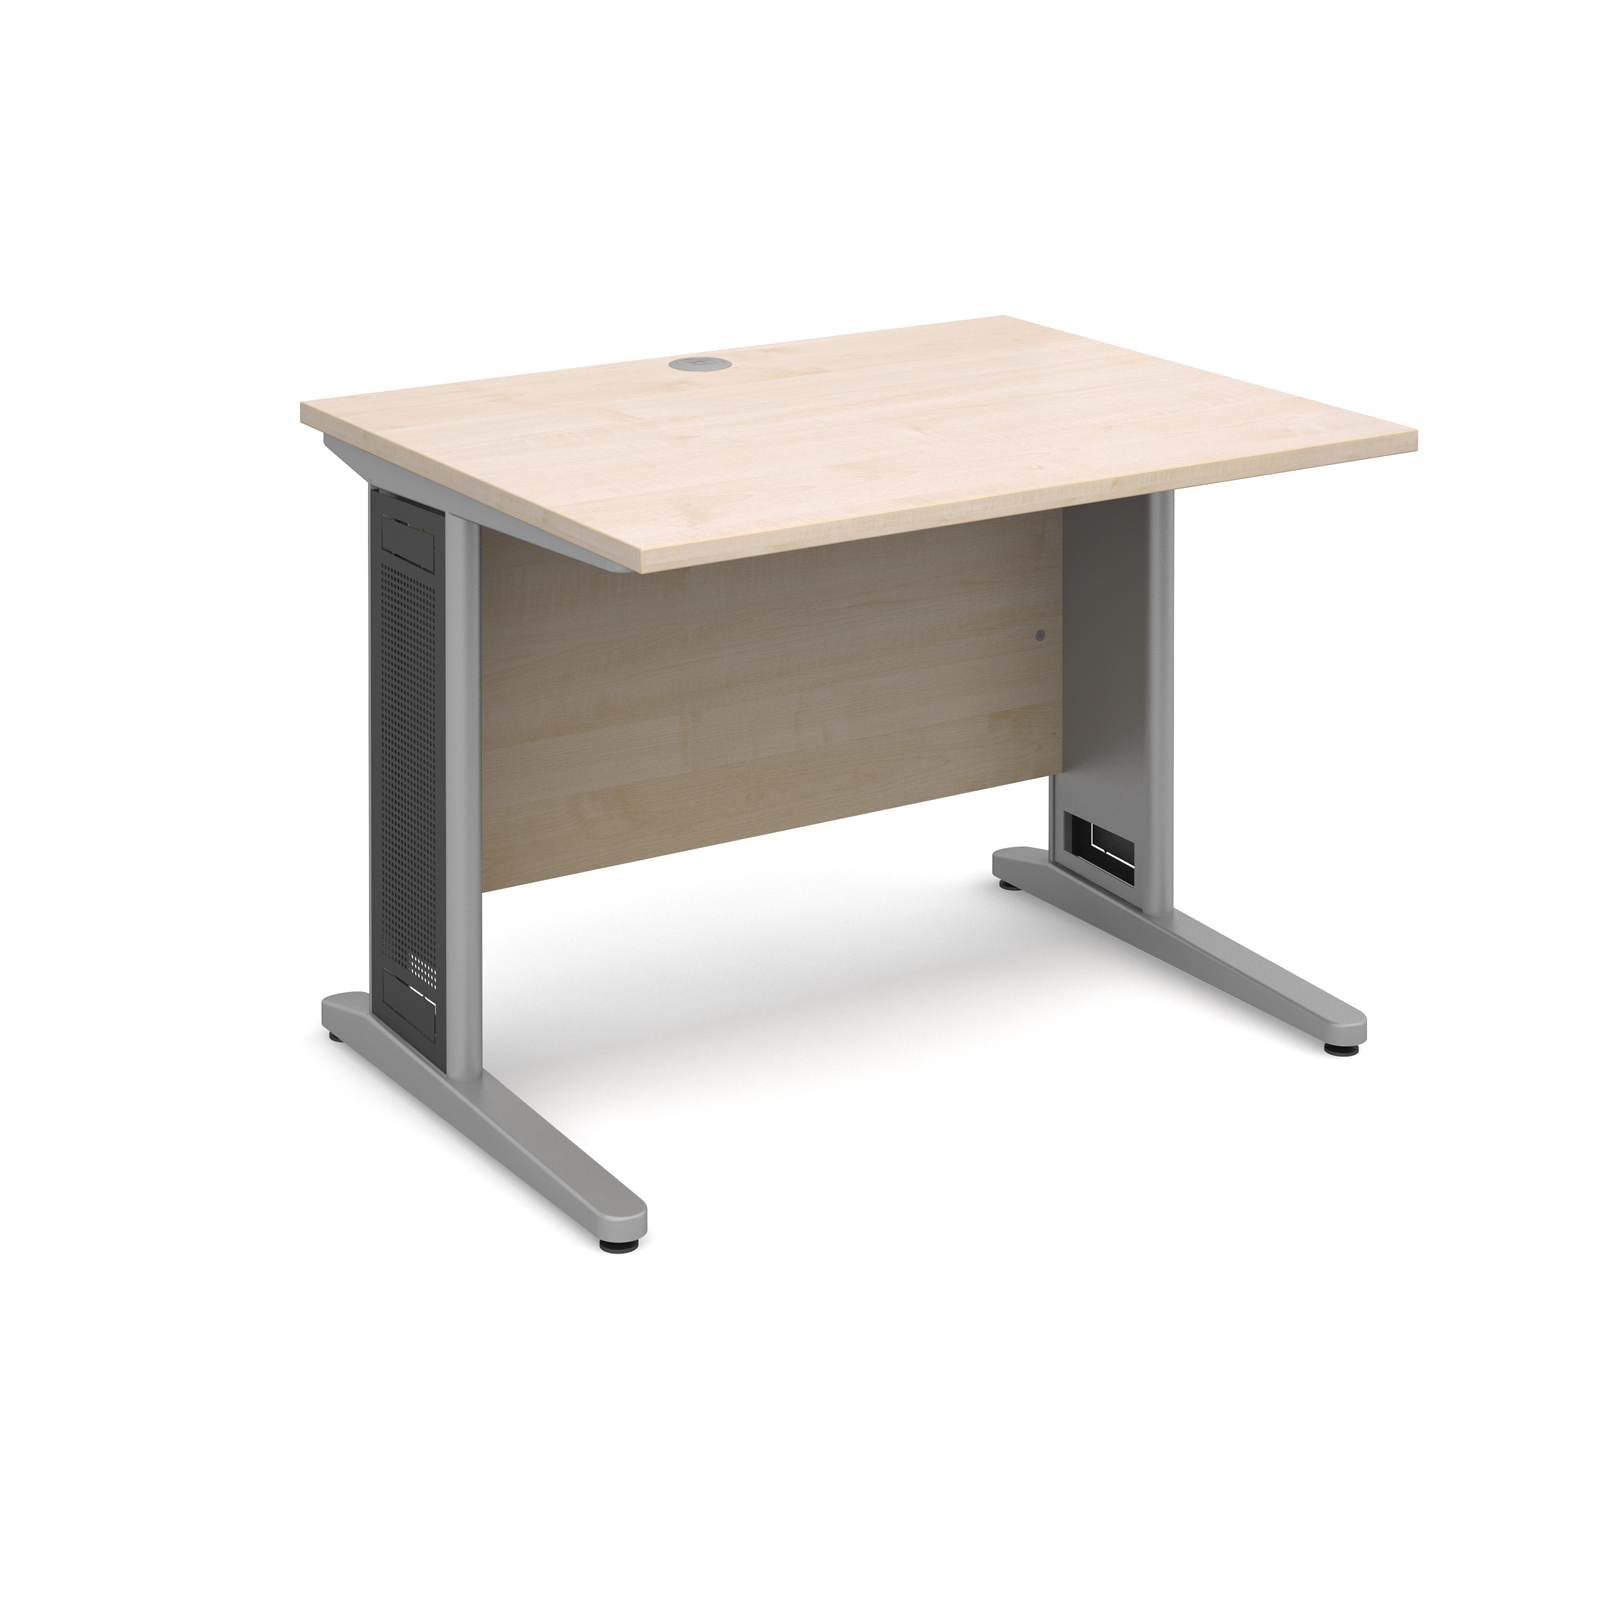 Largo straight desk 1000mm x 800mm - silver cantilever frame with removable grill, maple top